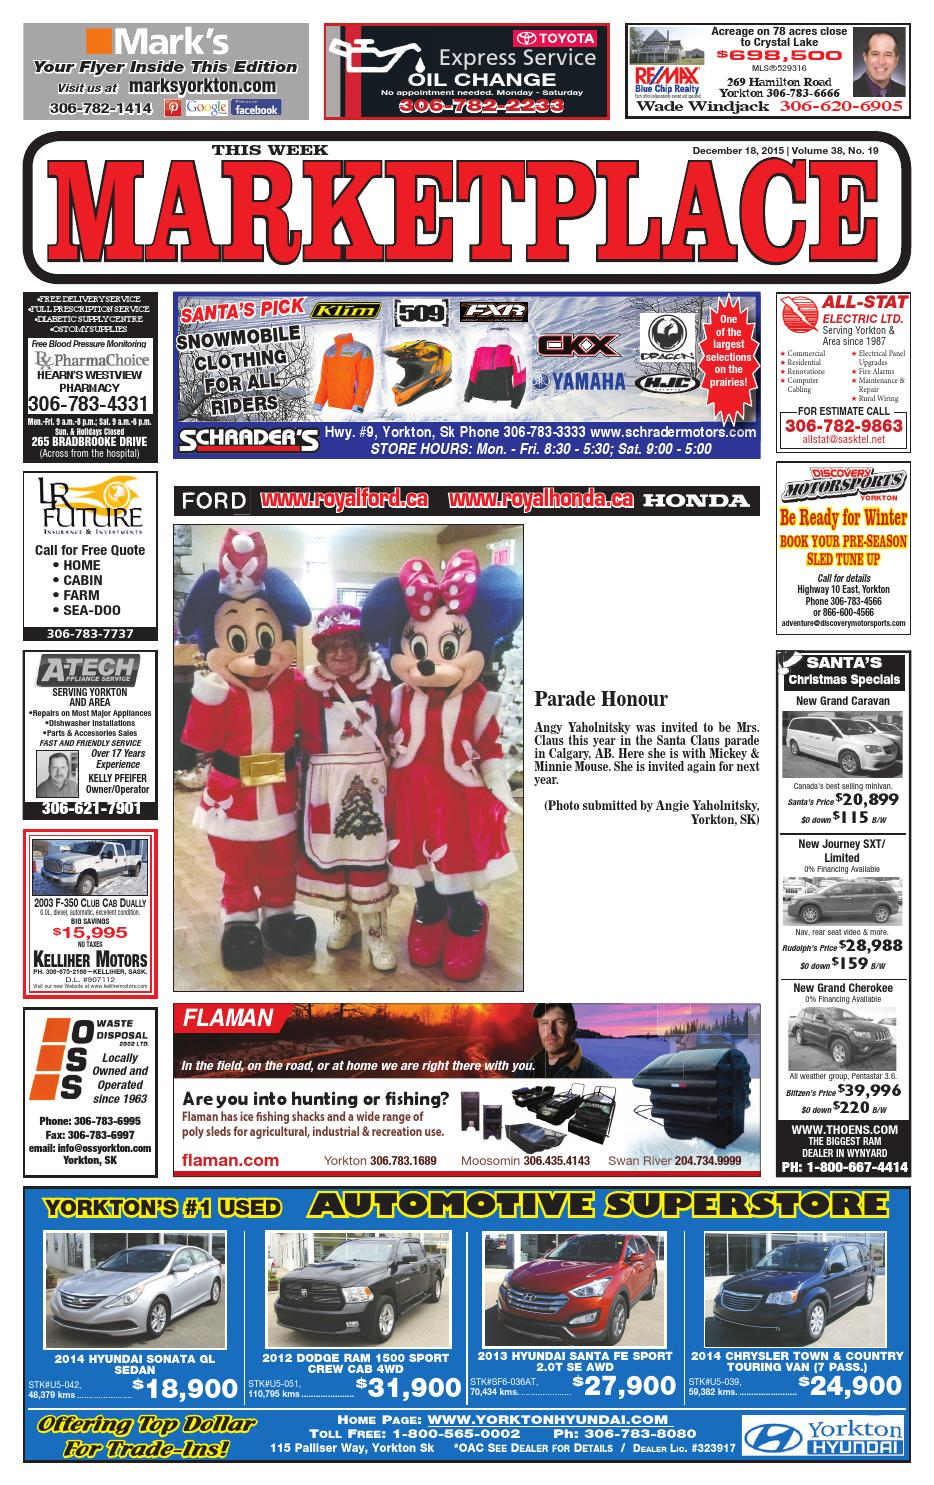 Marketplace December 18 2015 By Yorkton This Week Issuu Oil Filter Chevrolet Spin 1300 Cc Diesel